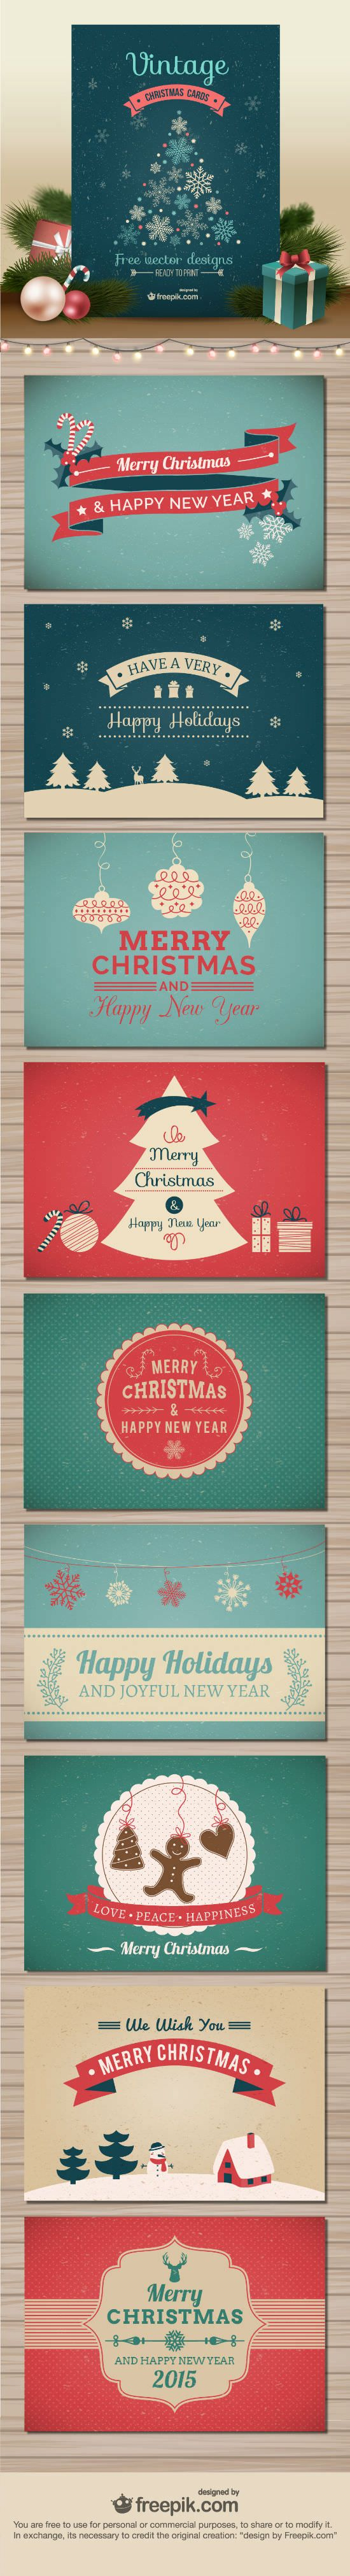 26 best Best Christmas Templates images on Pinterest | Christmas ...